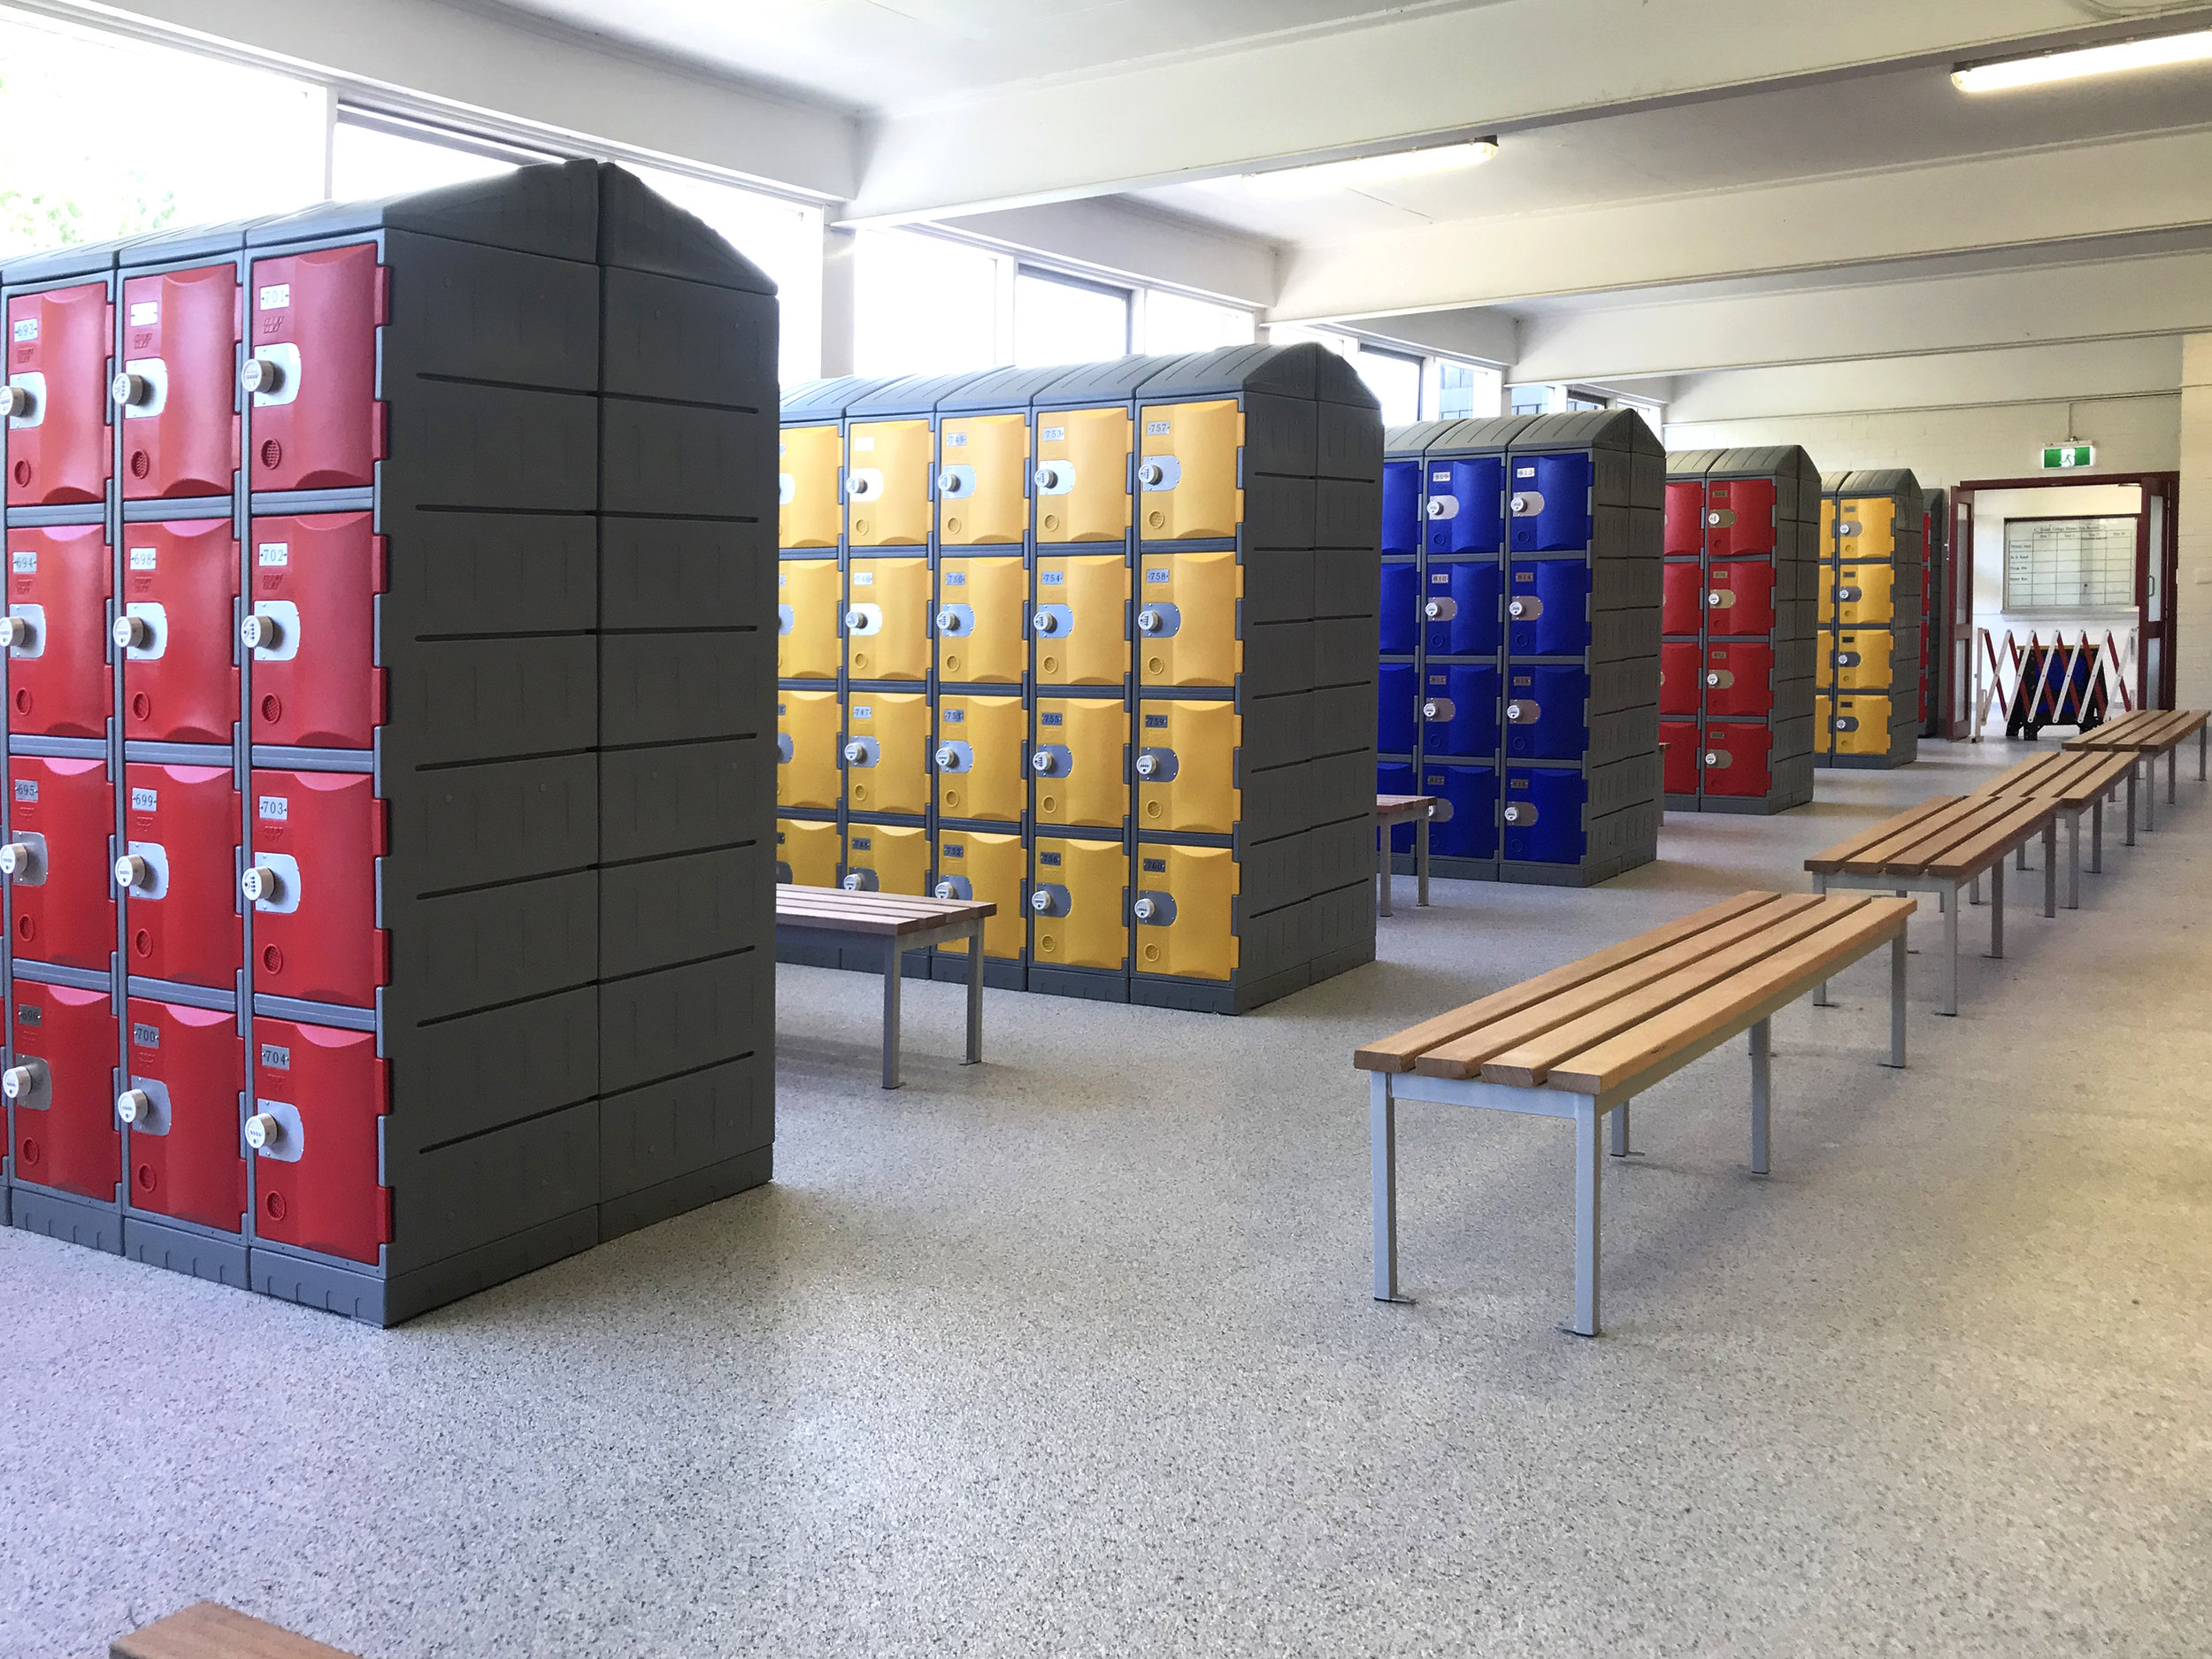 Red, yellow, and blue heavy duty plastic lockers